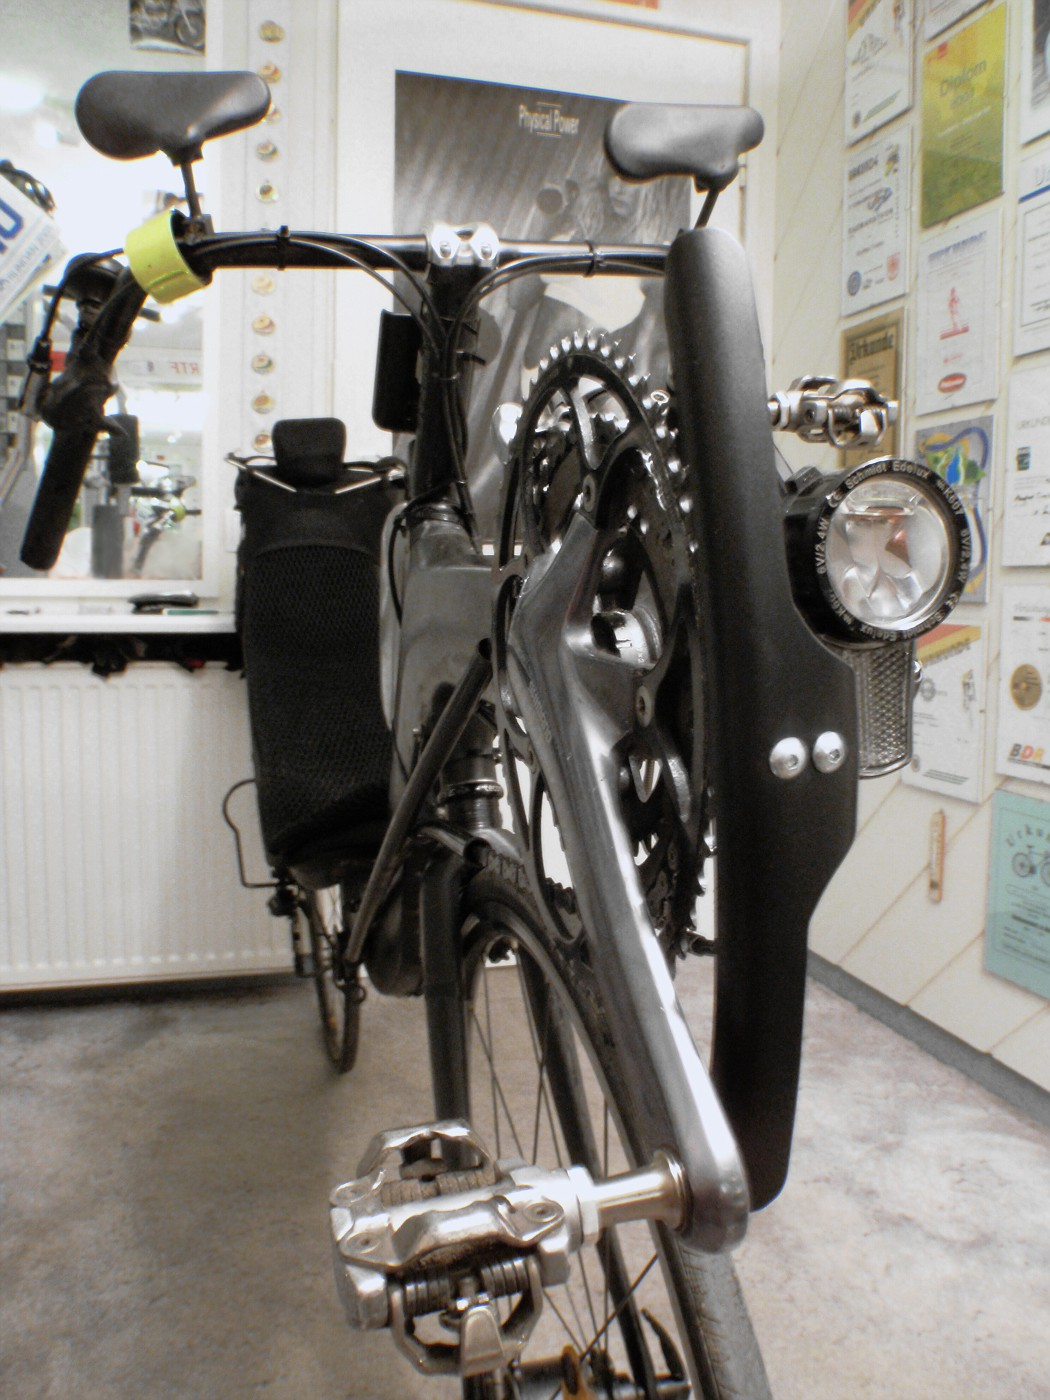 Mounted crankset protection